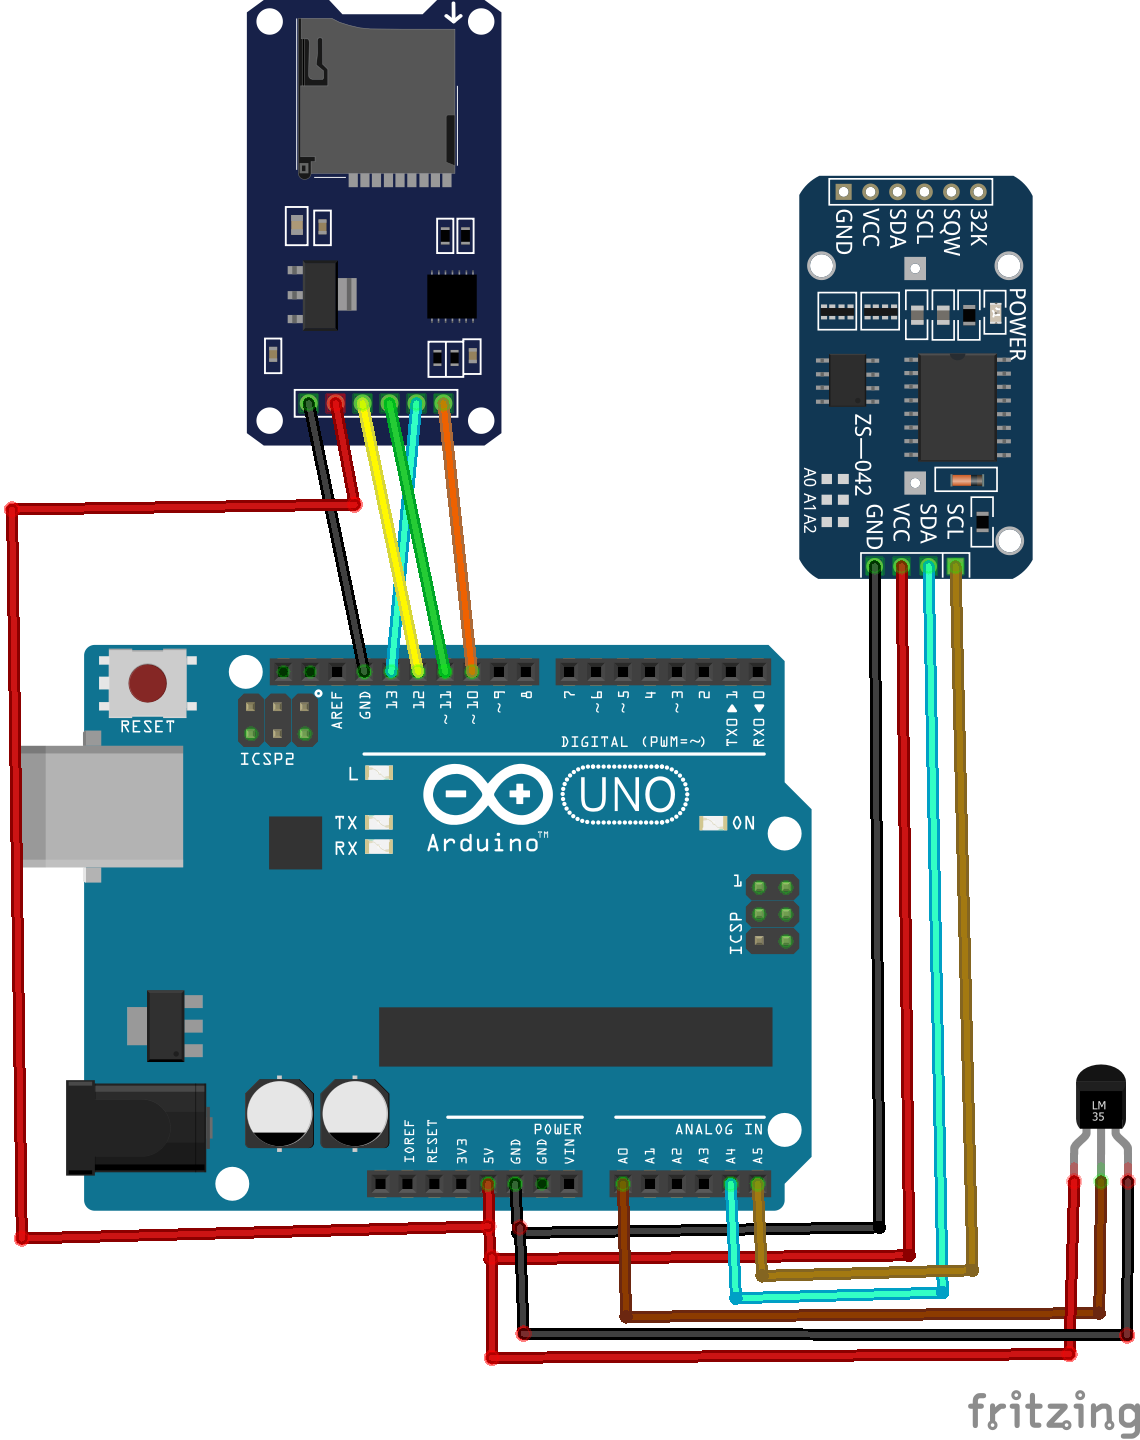 How to Make an Arduino SD Card Data Logger for Temperature